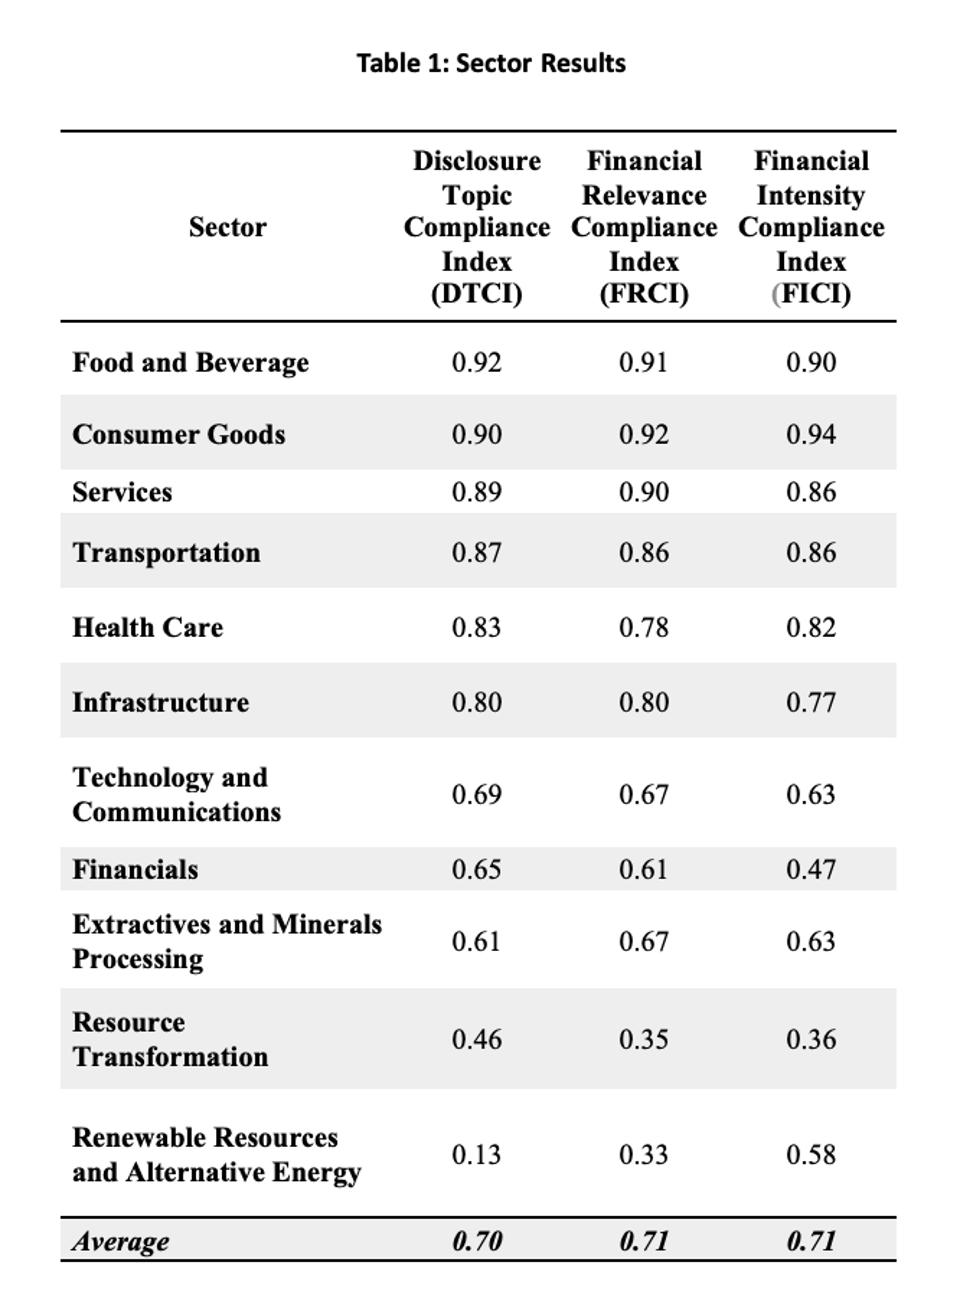 Table 1: Sector Results for DTCI, FRCI, and FICI Index Scores